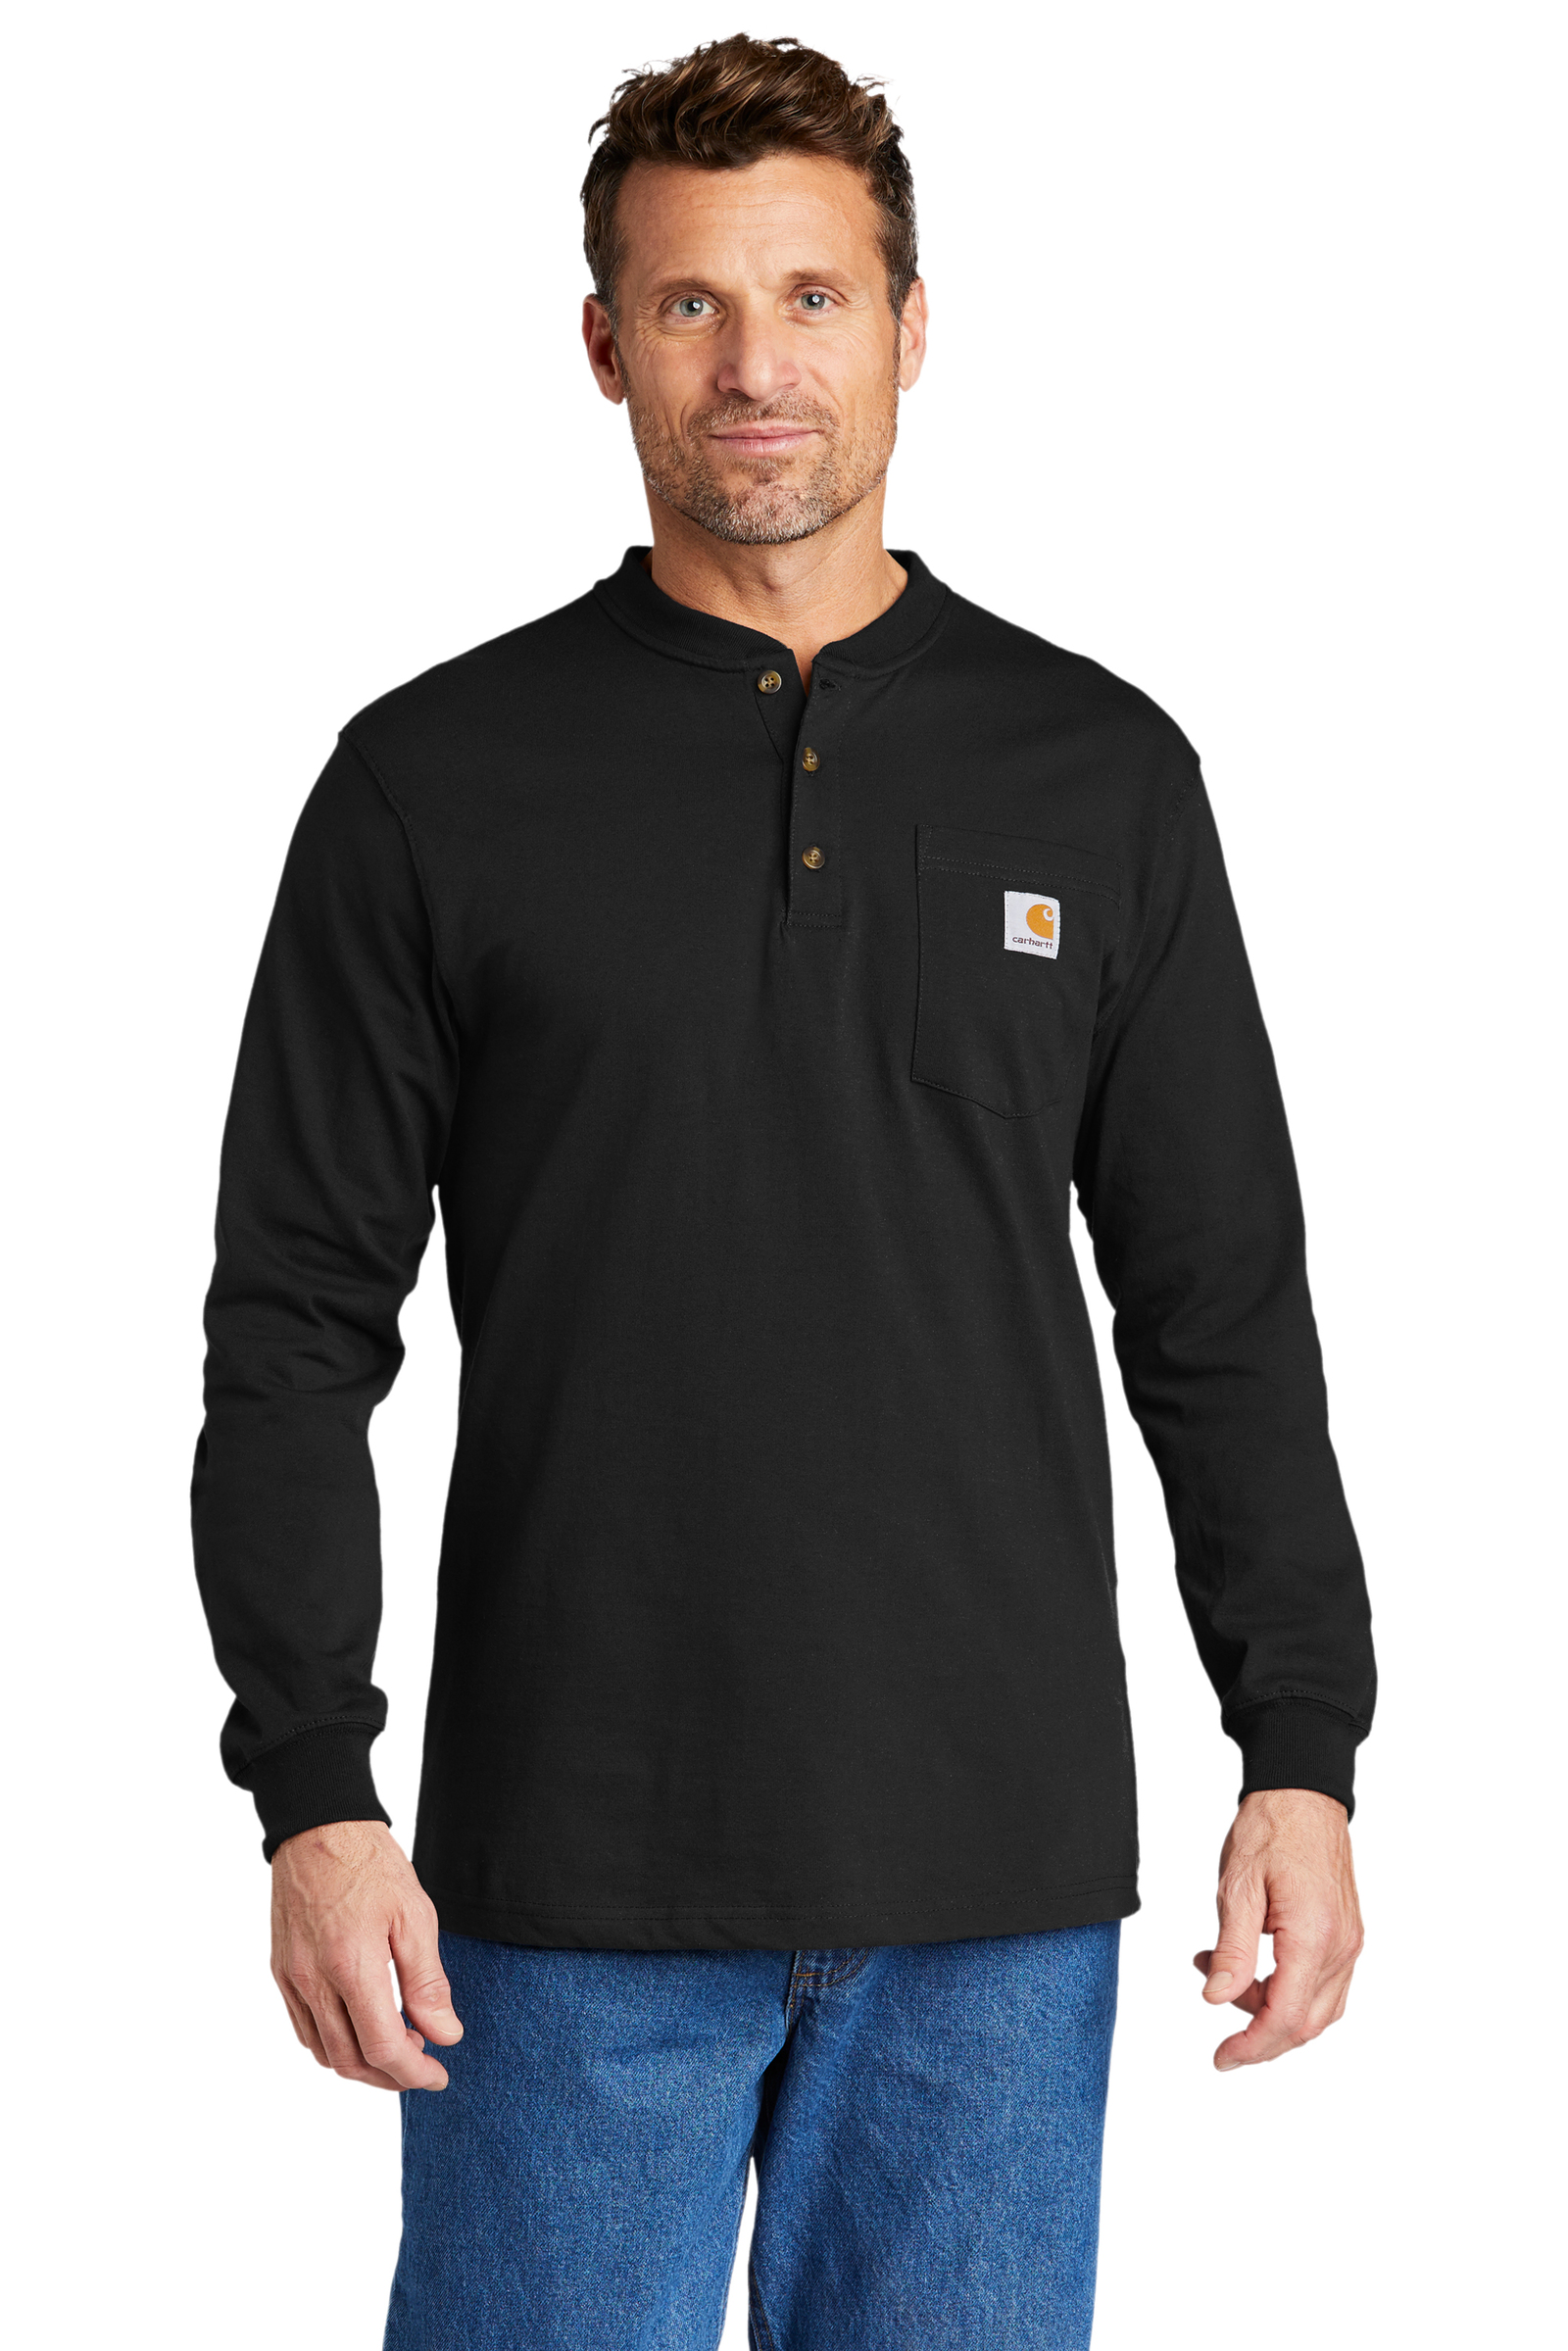 Carhartt Embroidered Men's Long Sleeve Henley T-Shirt